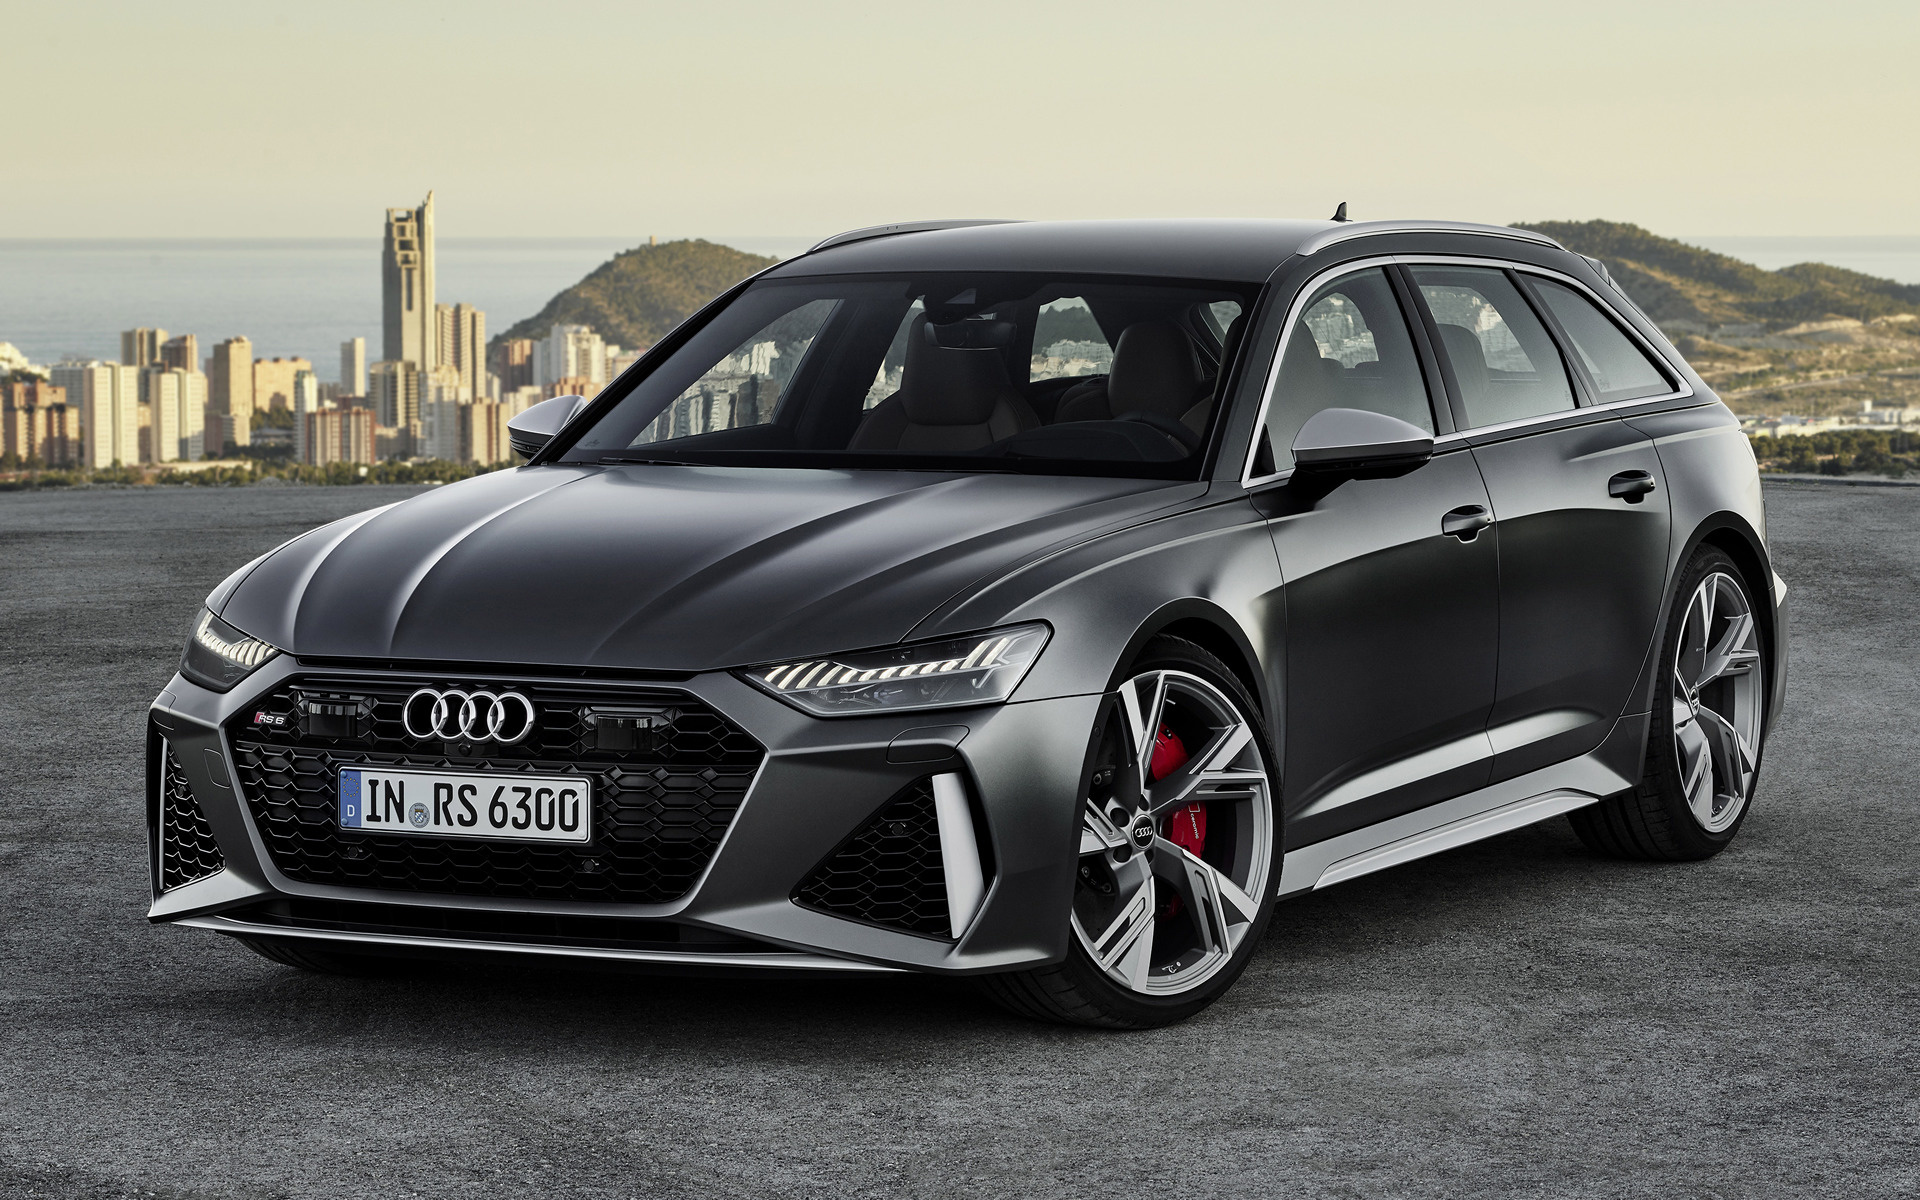 2019 Audi RS 6 Avant - Wallpapers and HD Images | Car Pixel